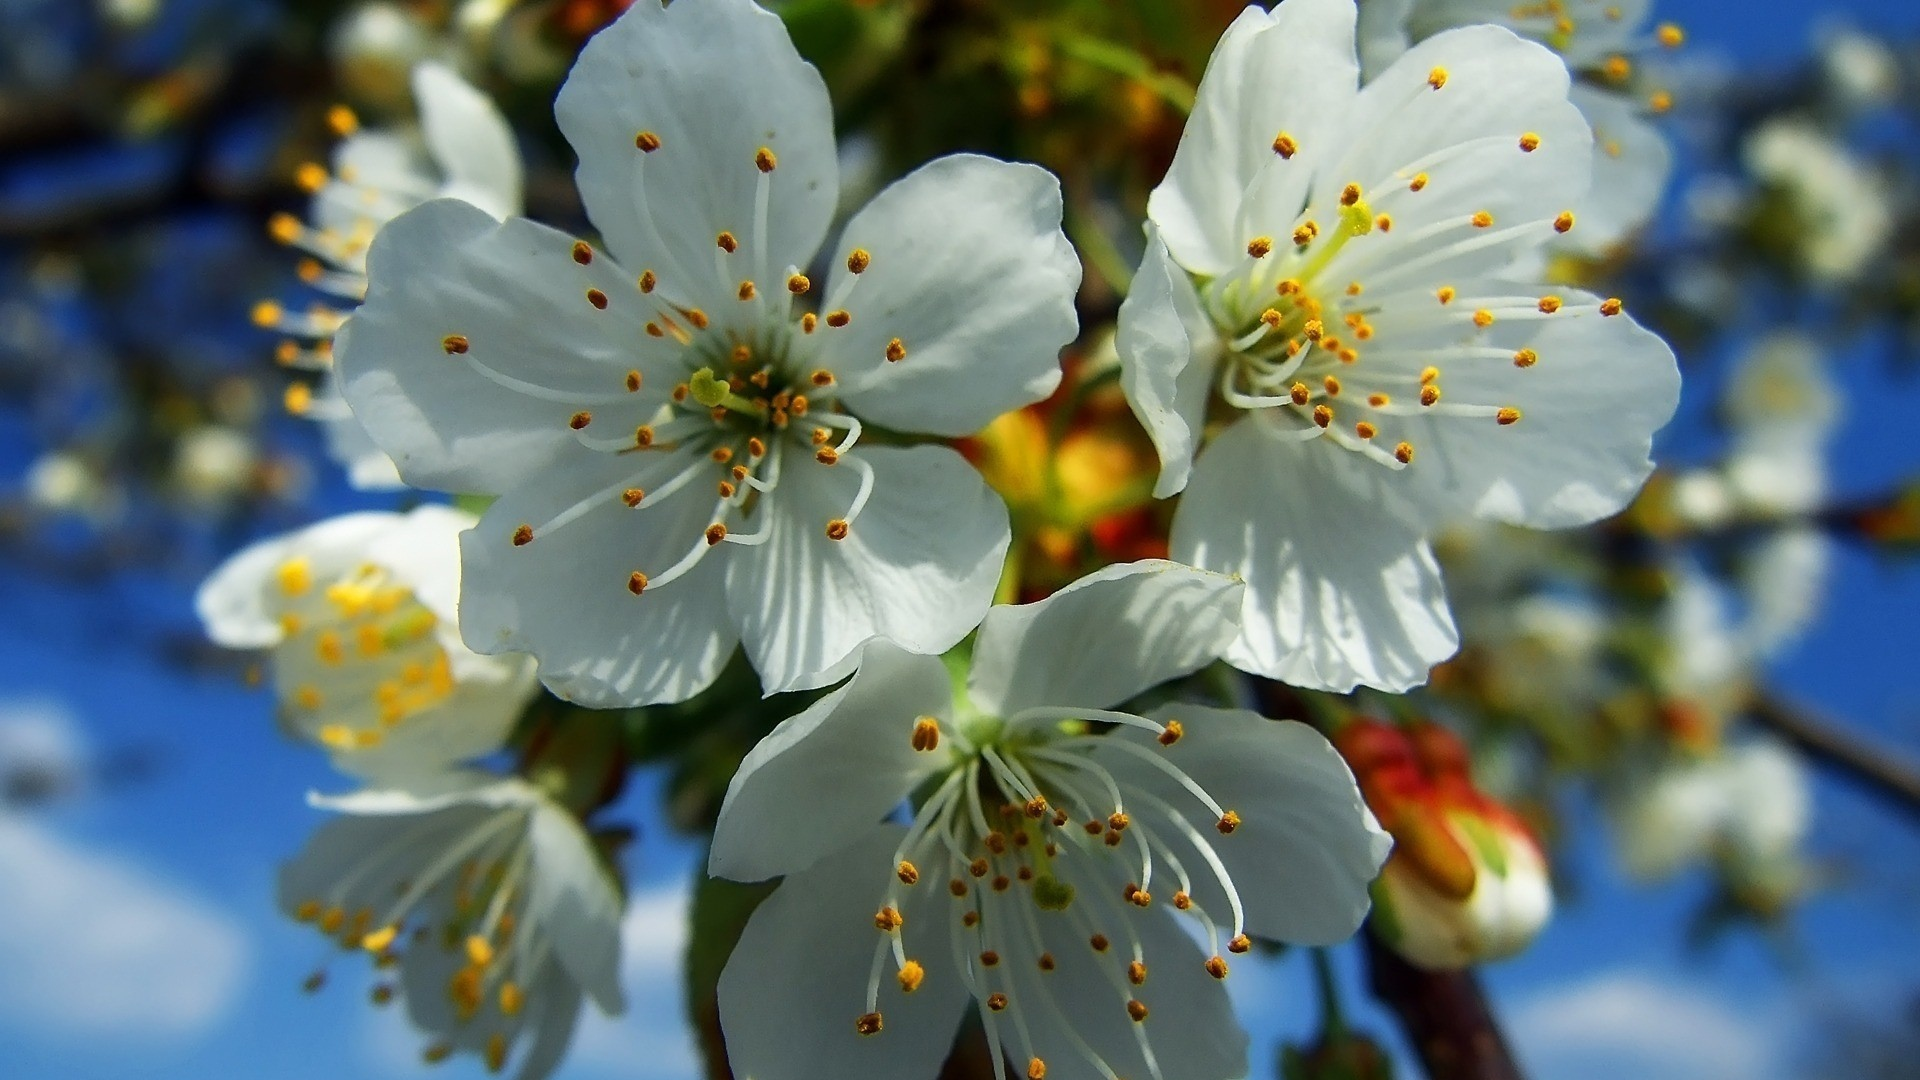 Download-1920x1080-Flowers-Fruit-White-Blue-Yellow-wallpaper-wpc9004465